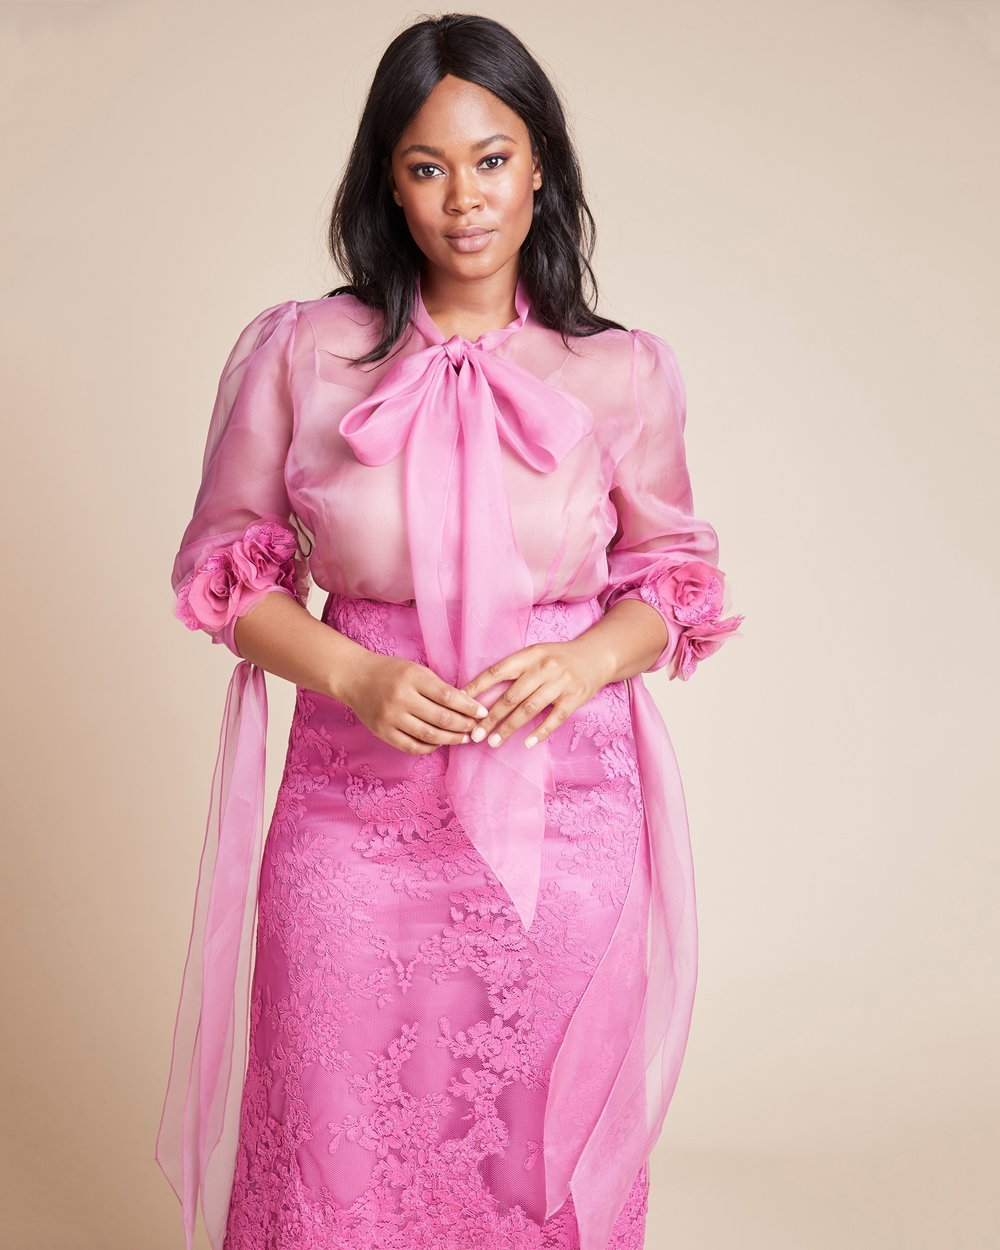 Luxury Plus SIze Fashion Finds at 11 Honore: MARCHESA Silk Organza Plus Size Blouse